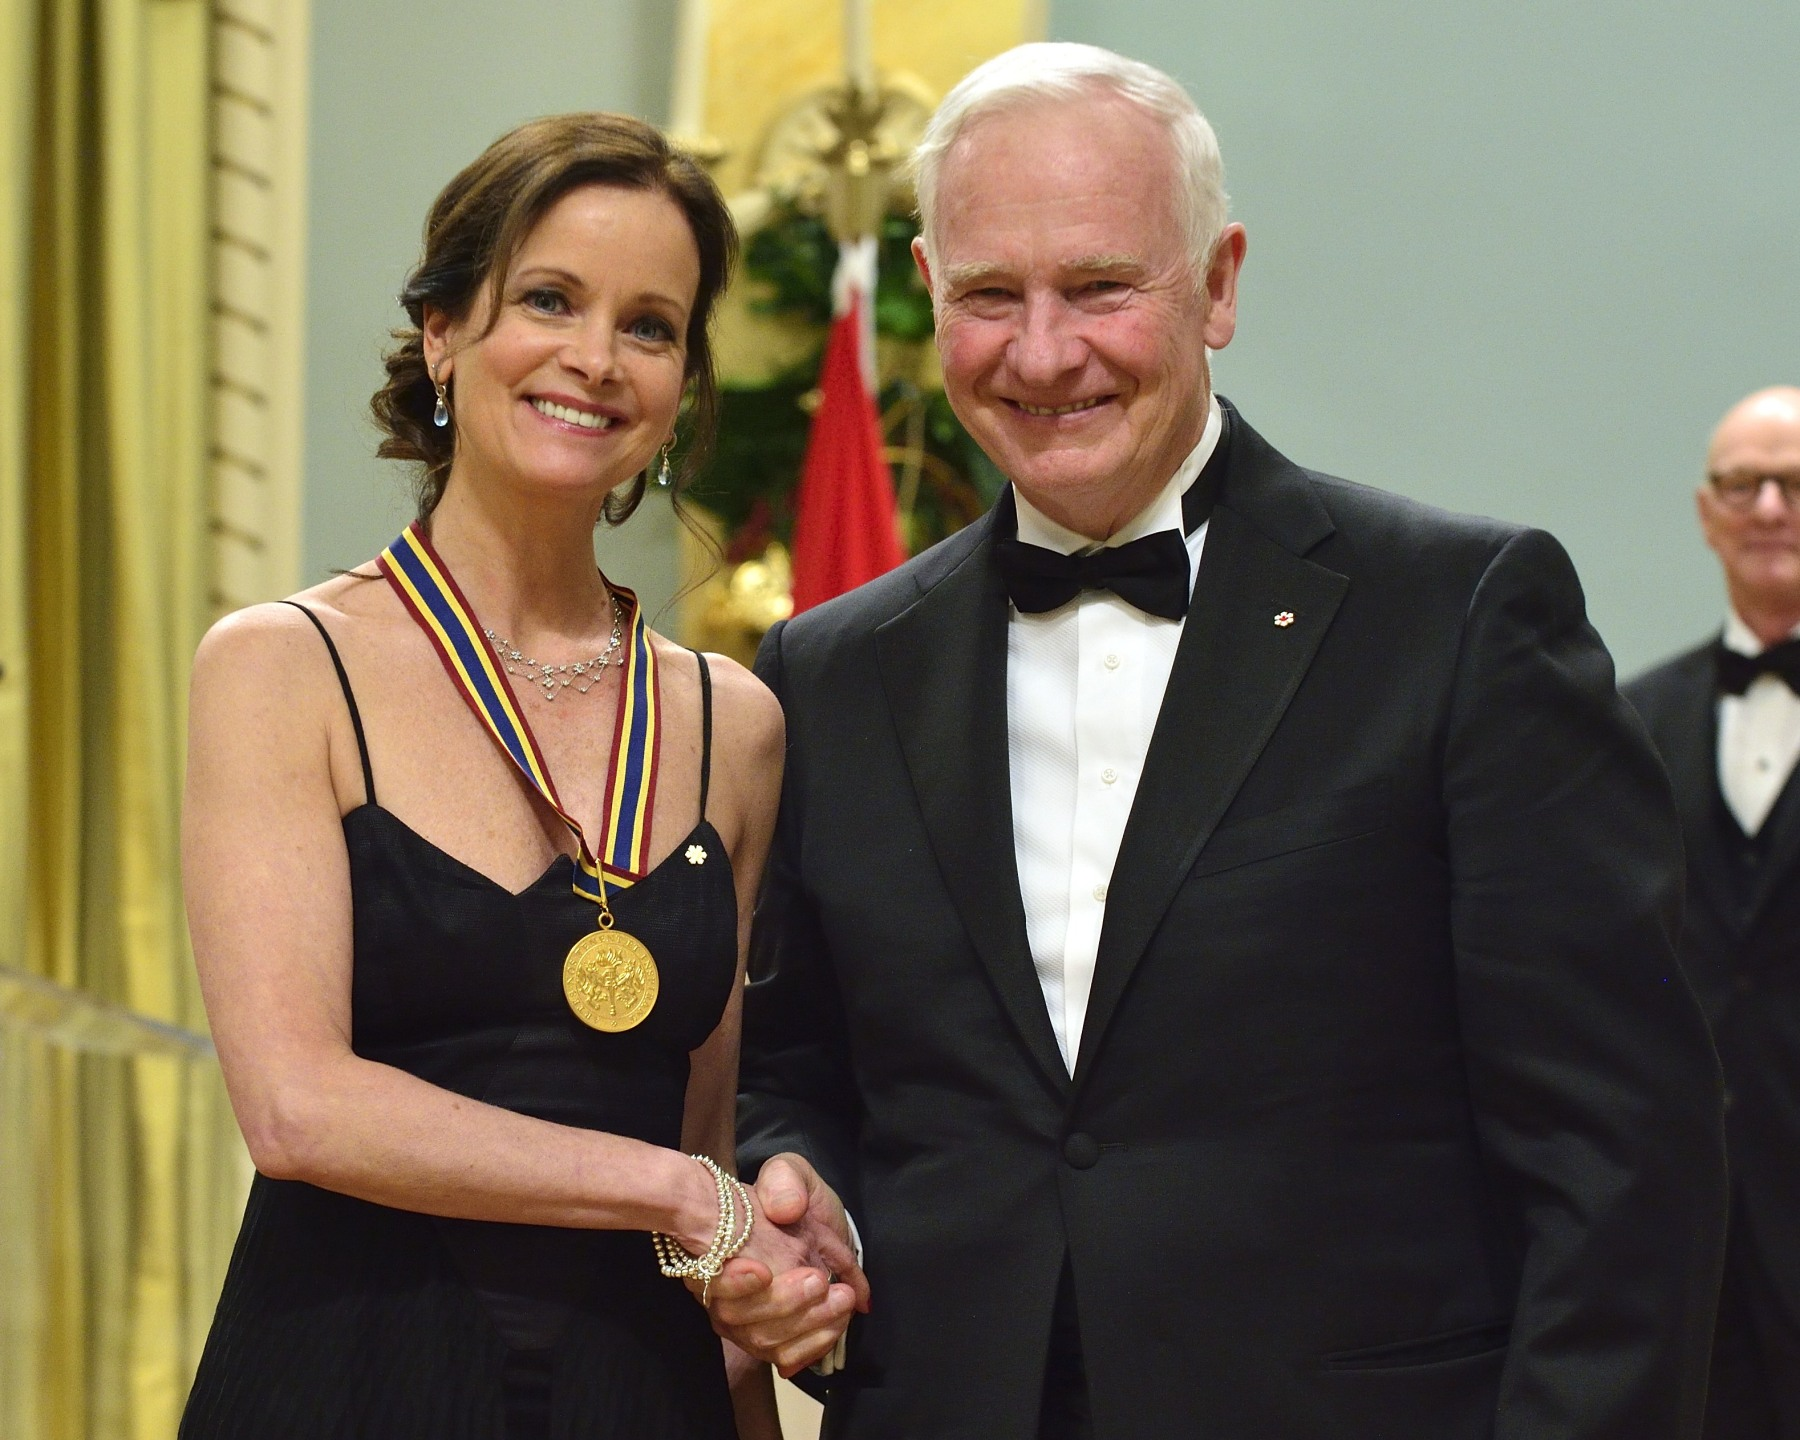 Ms. Anik Bissonnette, dancer, teacher and artistic director, received a GGPAA for Lifetime Artistic Achievement Award.